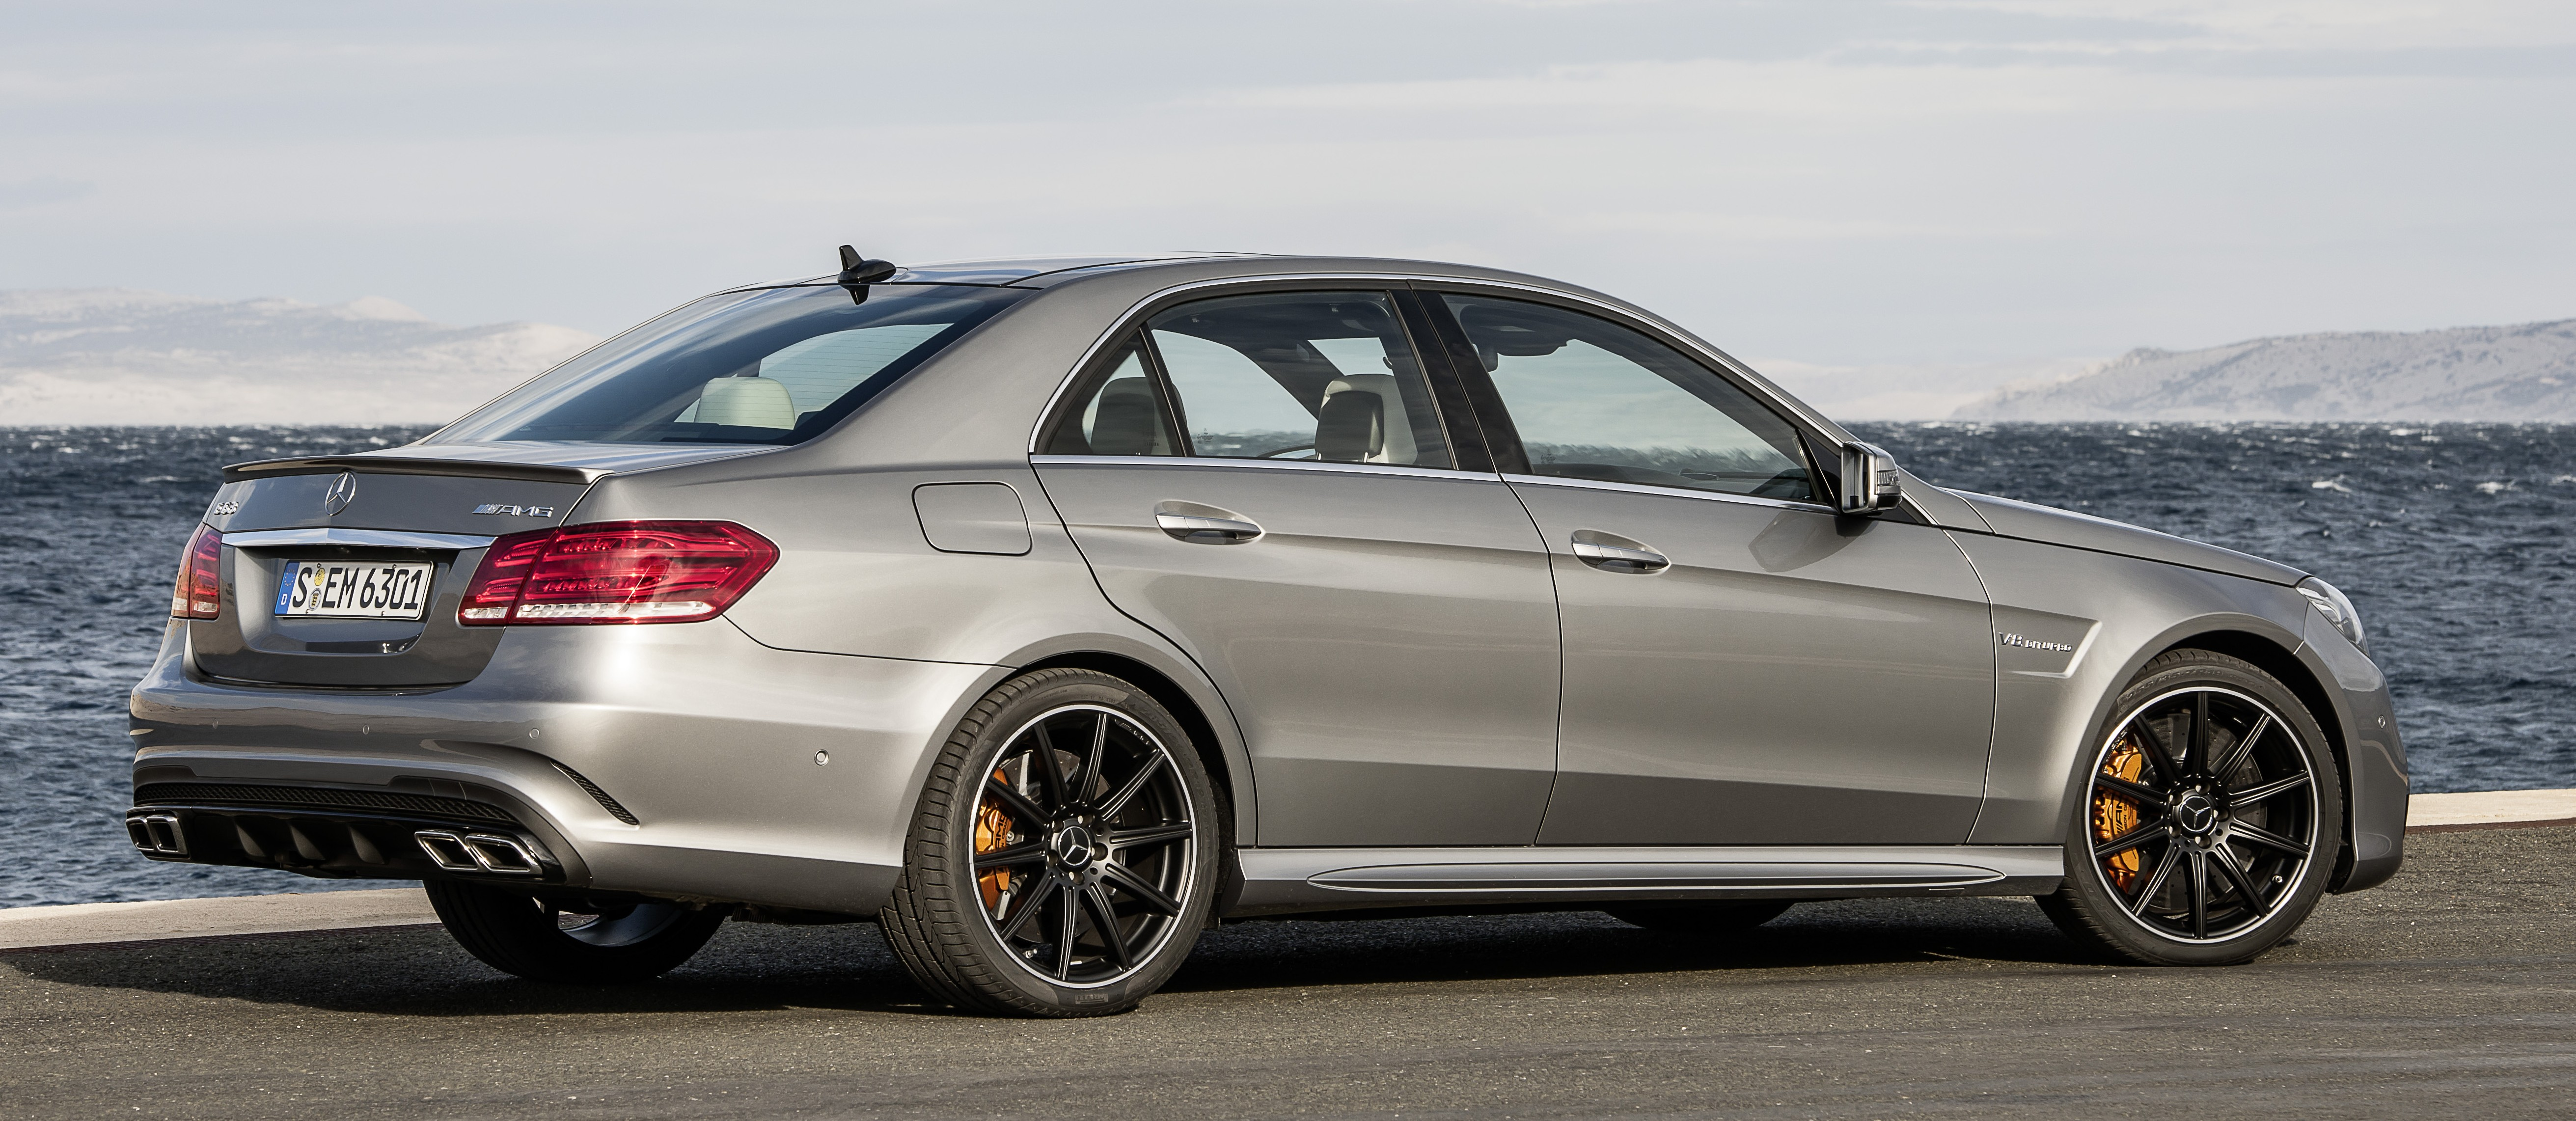 Amg >> W212 Mercedes-Benz E63 AMG facelift unveiled, now with more powerful 4MATIC S-model option Paul ...